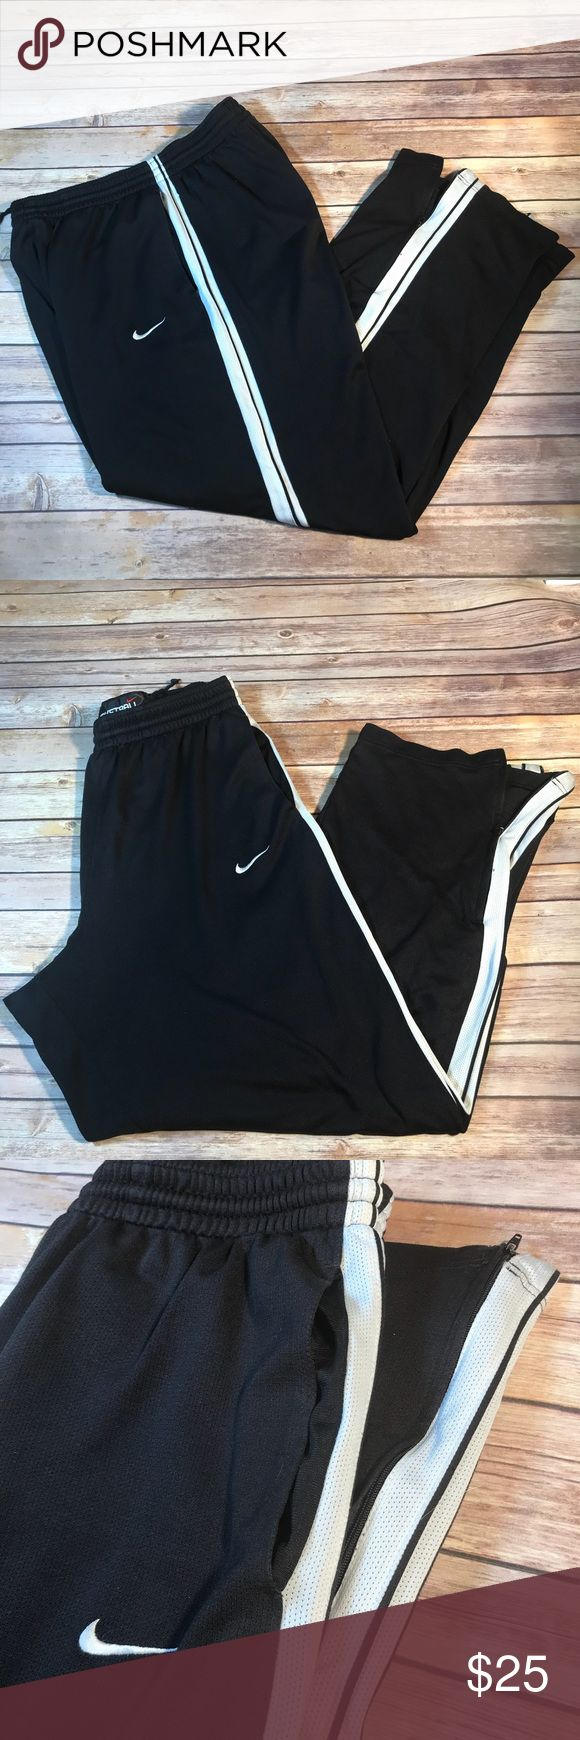 Nike basketball pants Black basketball pants with white stripe. Zippers at the bottom of the legs, pockets, drawstring. Has a few tiny snags that is normal for this type of material. One stitch loose in the seat but seam is still tight. Very bottom of white stripe is lightly stained, See pics.  🌷No lowballers, please 🌷Reasonable offers always welcome 🌷Bundle and save L2 Nike Pants